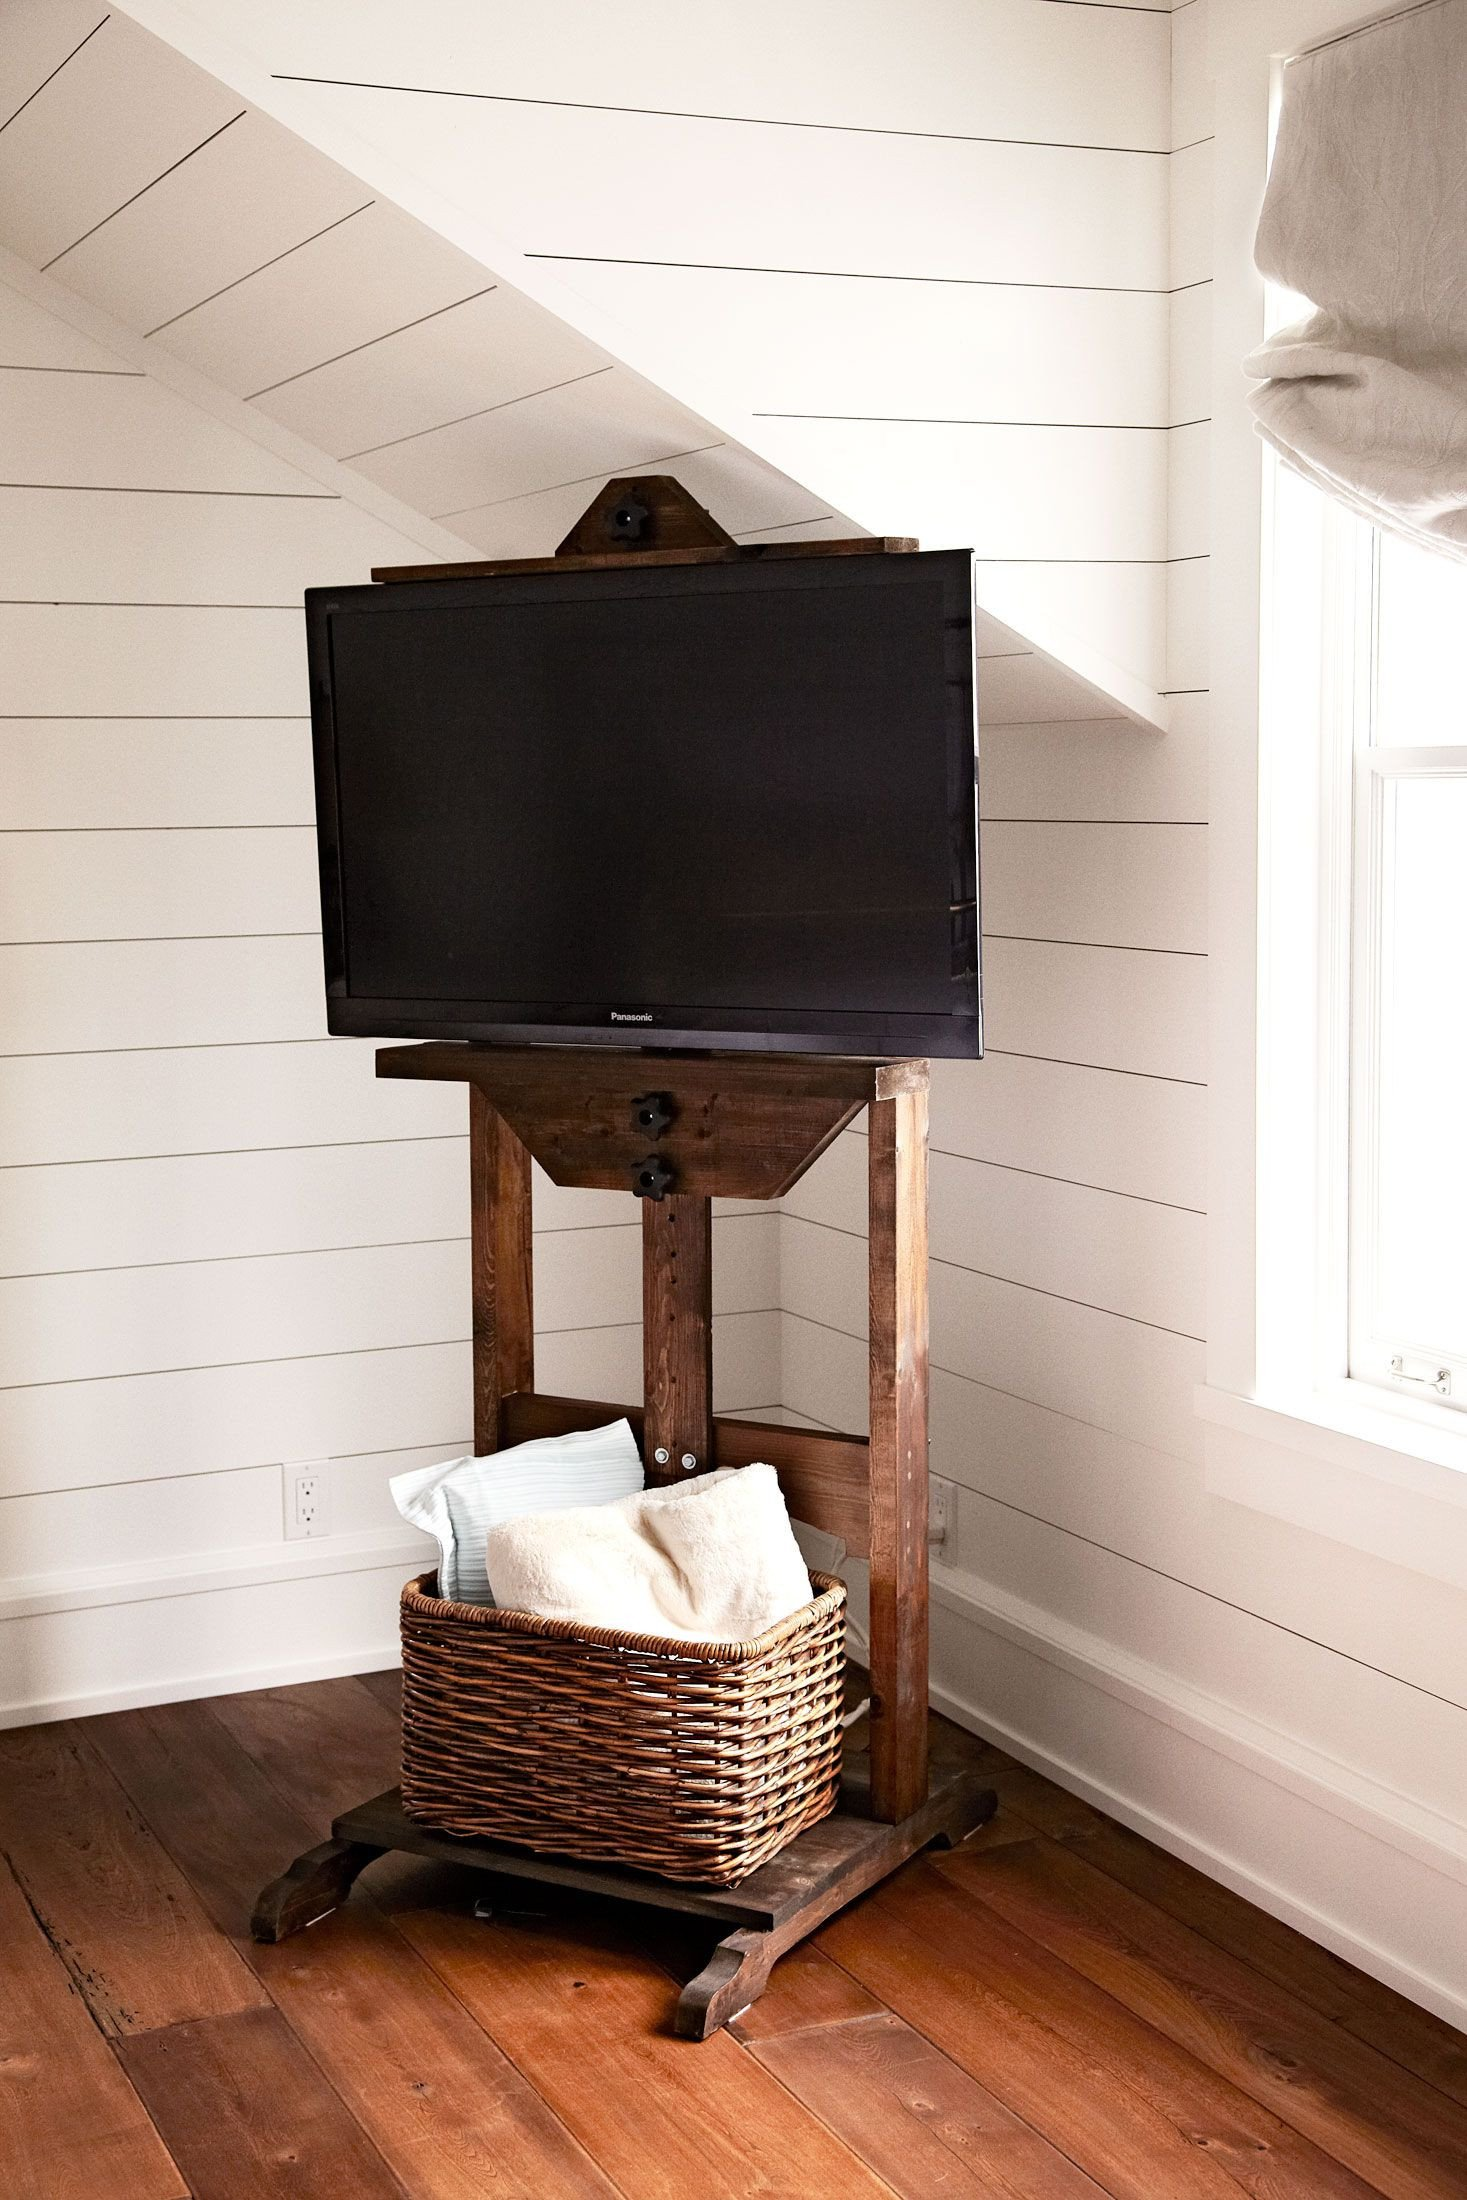 Good Size Tv for Bedroom Elegant How to Hide Tv Cables Chatelaine